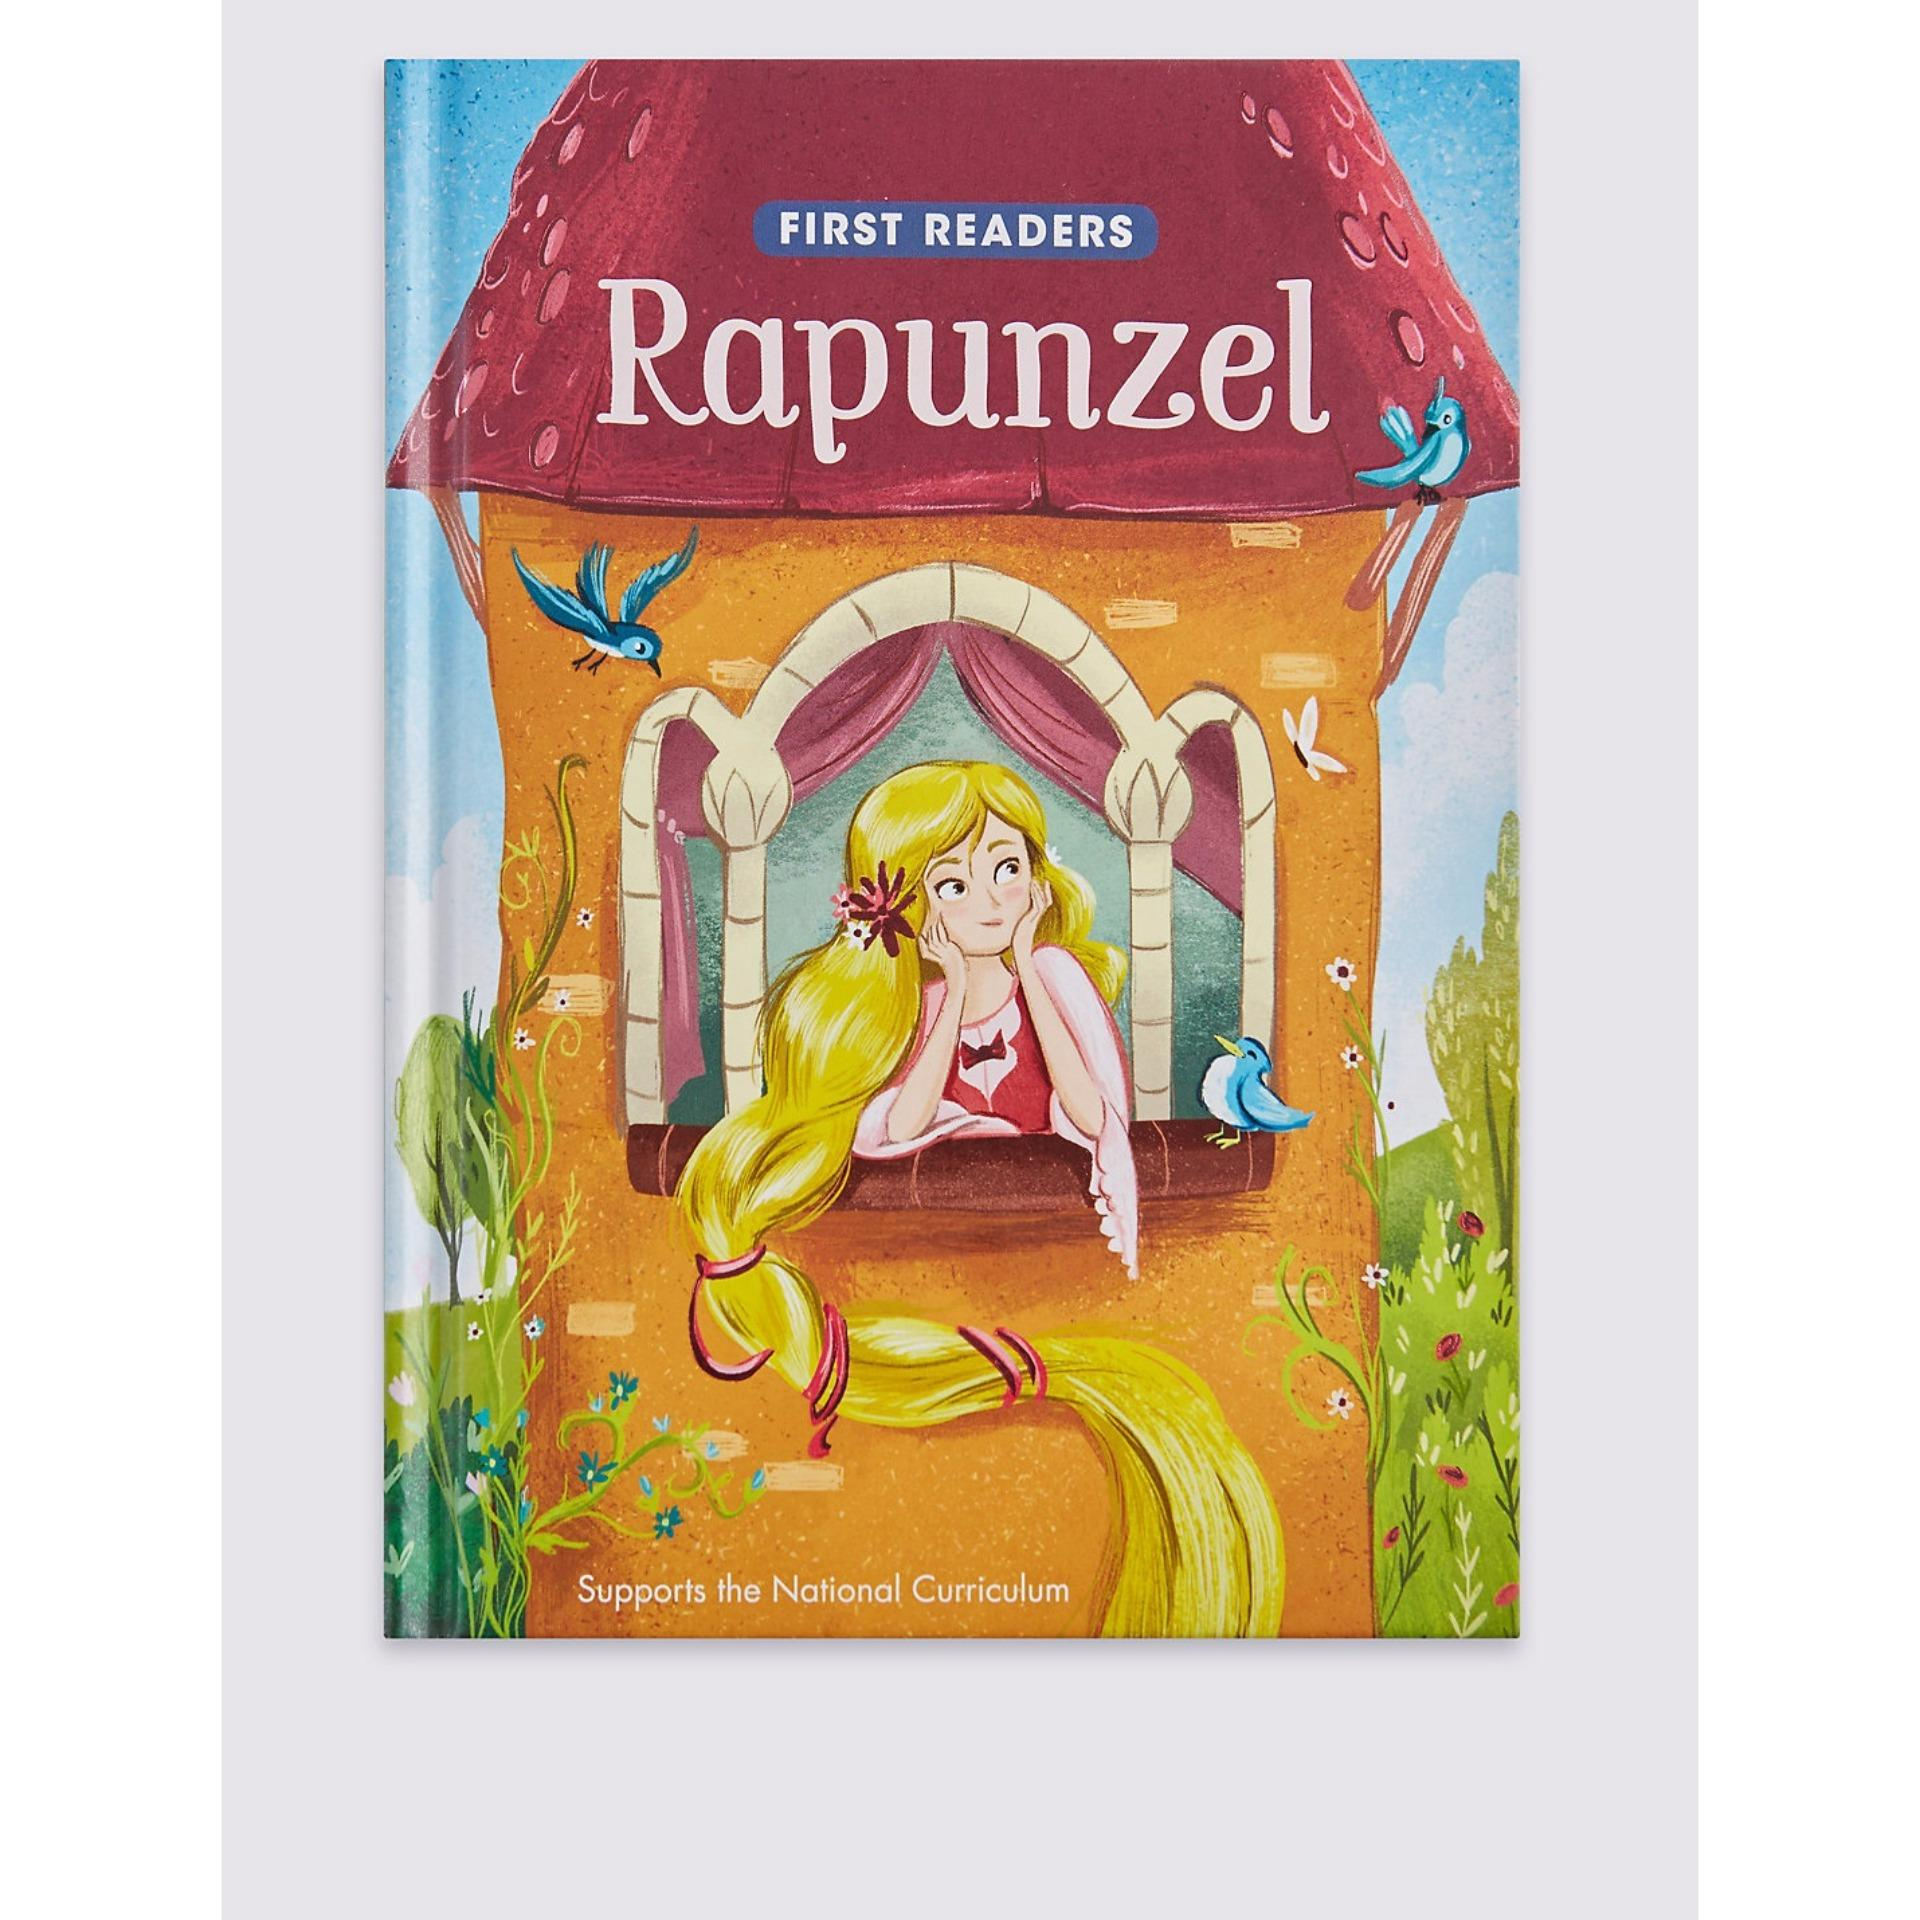 First Readers Rapunzel